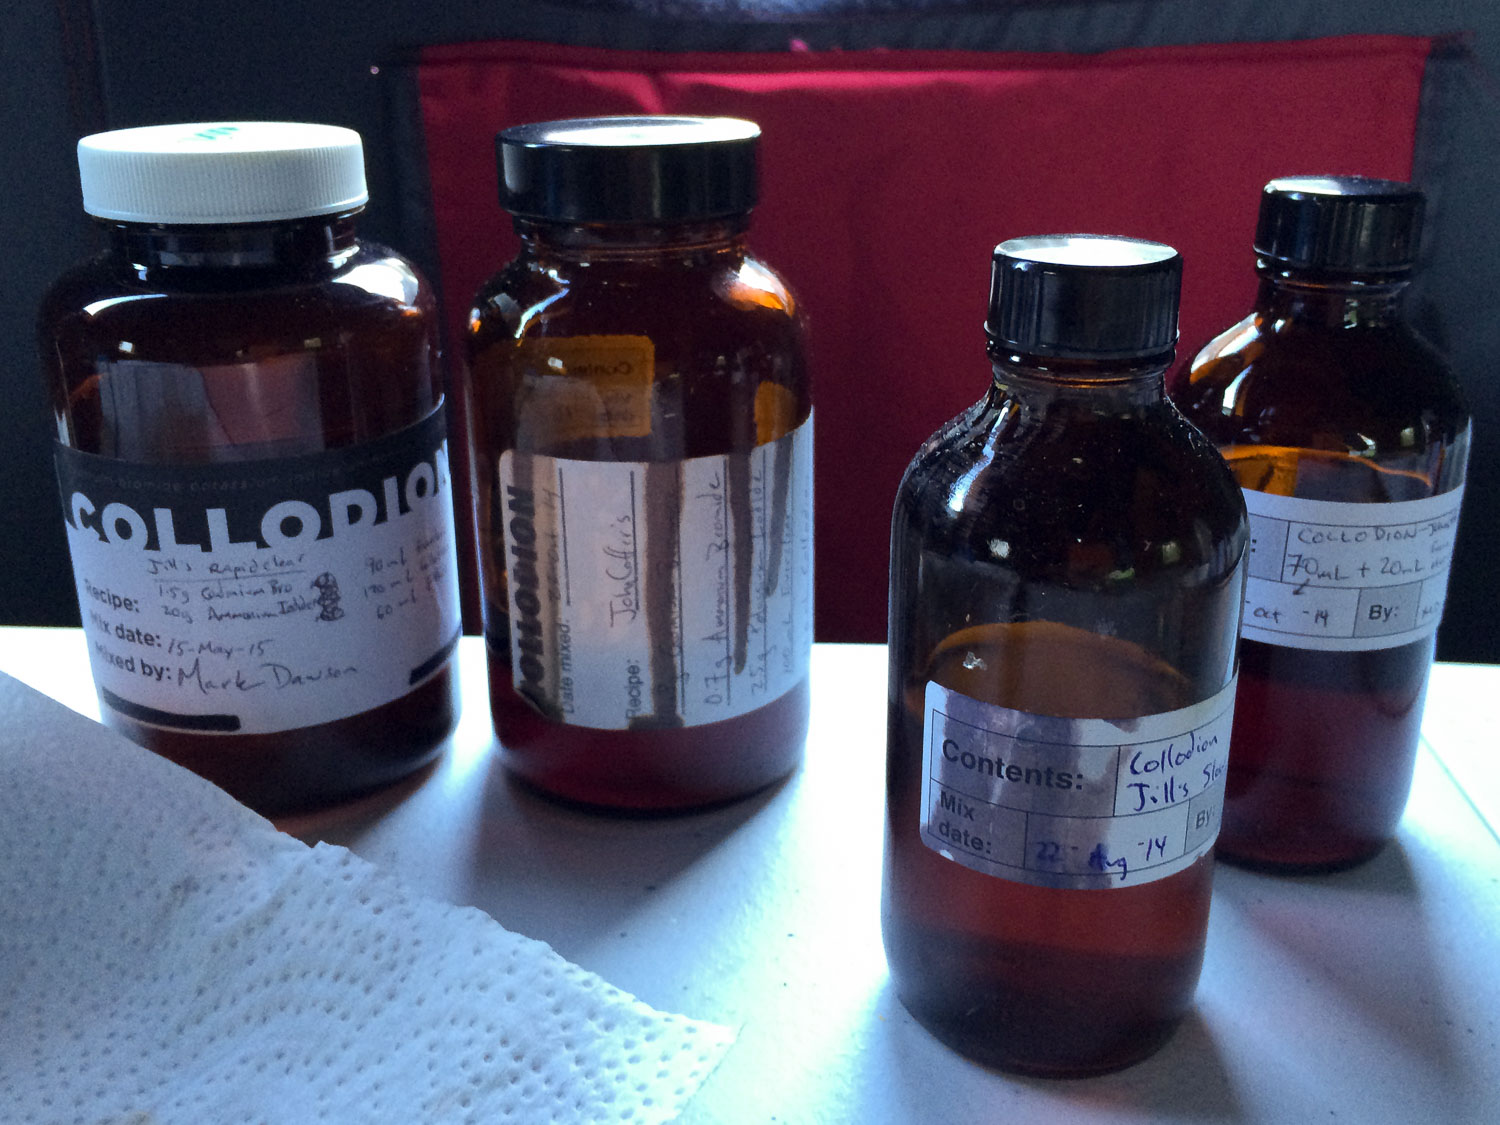 Since I was focusing on only one or two compositions, I took the opportunity to directly compare a few different batches of collodion - either different recipes, or different ages. These were the four I worked with today.